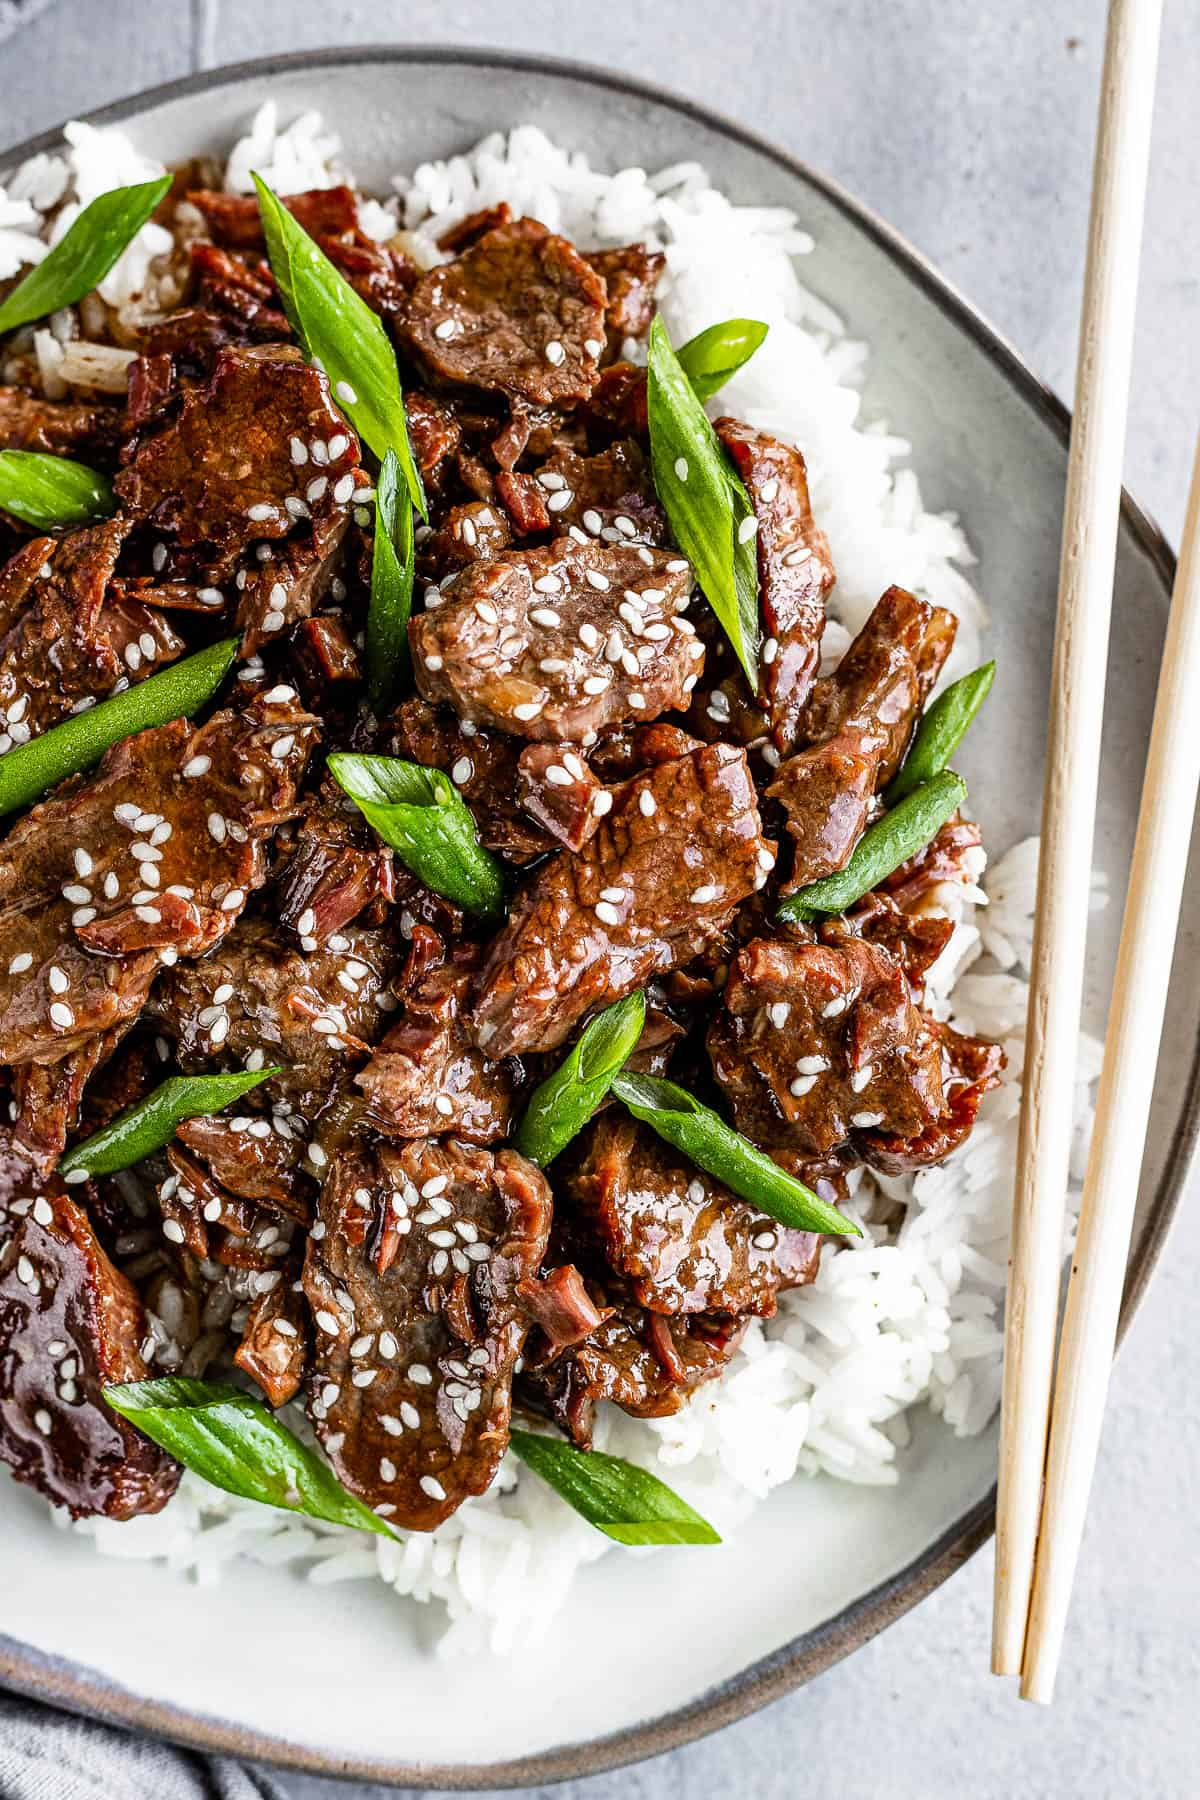 Instant Pot Mongolian Beef Over White Rice on a Gray Plate with a Pair of Wooden Chopsticks